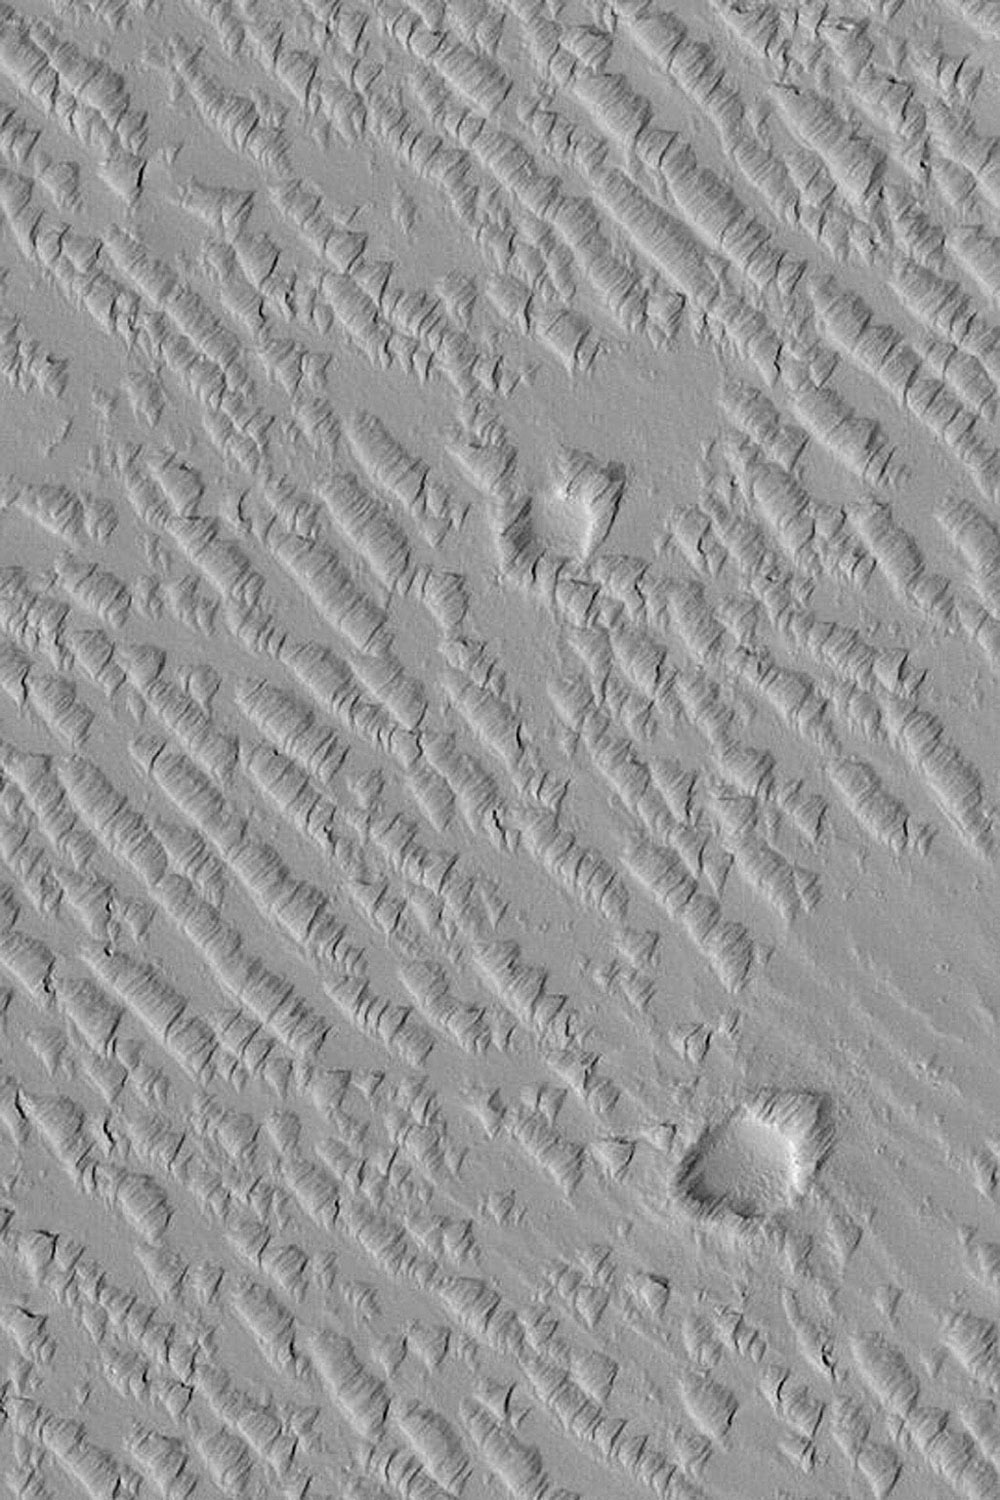 NASA's Mars Global Surveyor shows a suite of wind-sculpted ridges on the plains northwest of the Tharsis volcano, Ascraeus Mons on Mars. Two circular features are old meteor impact craters.